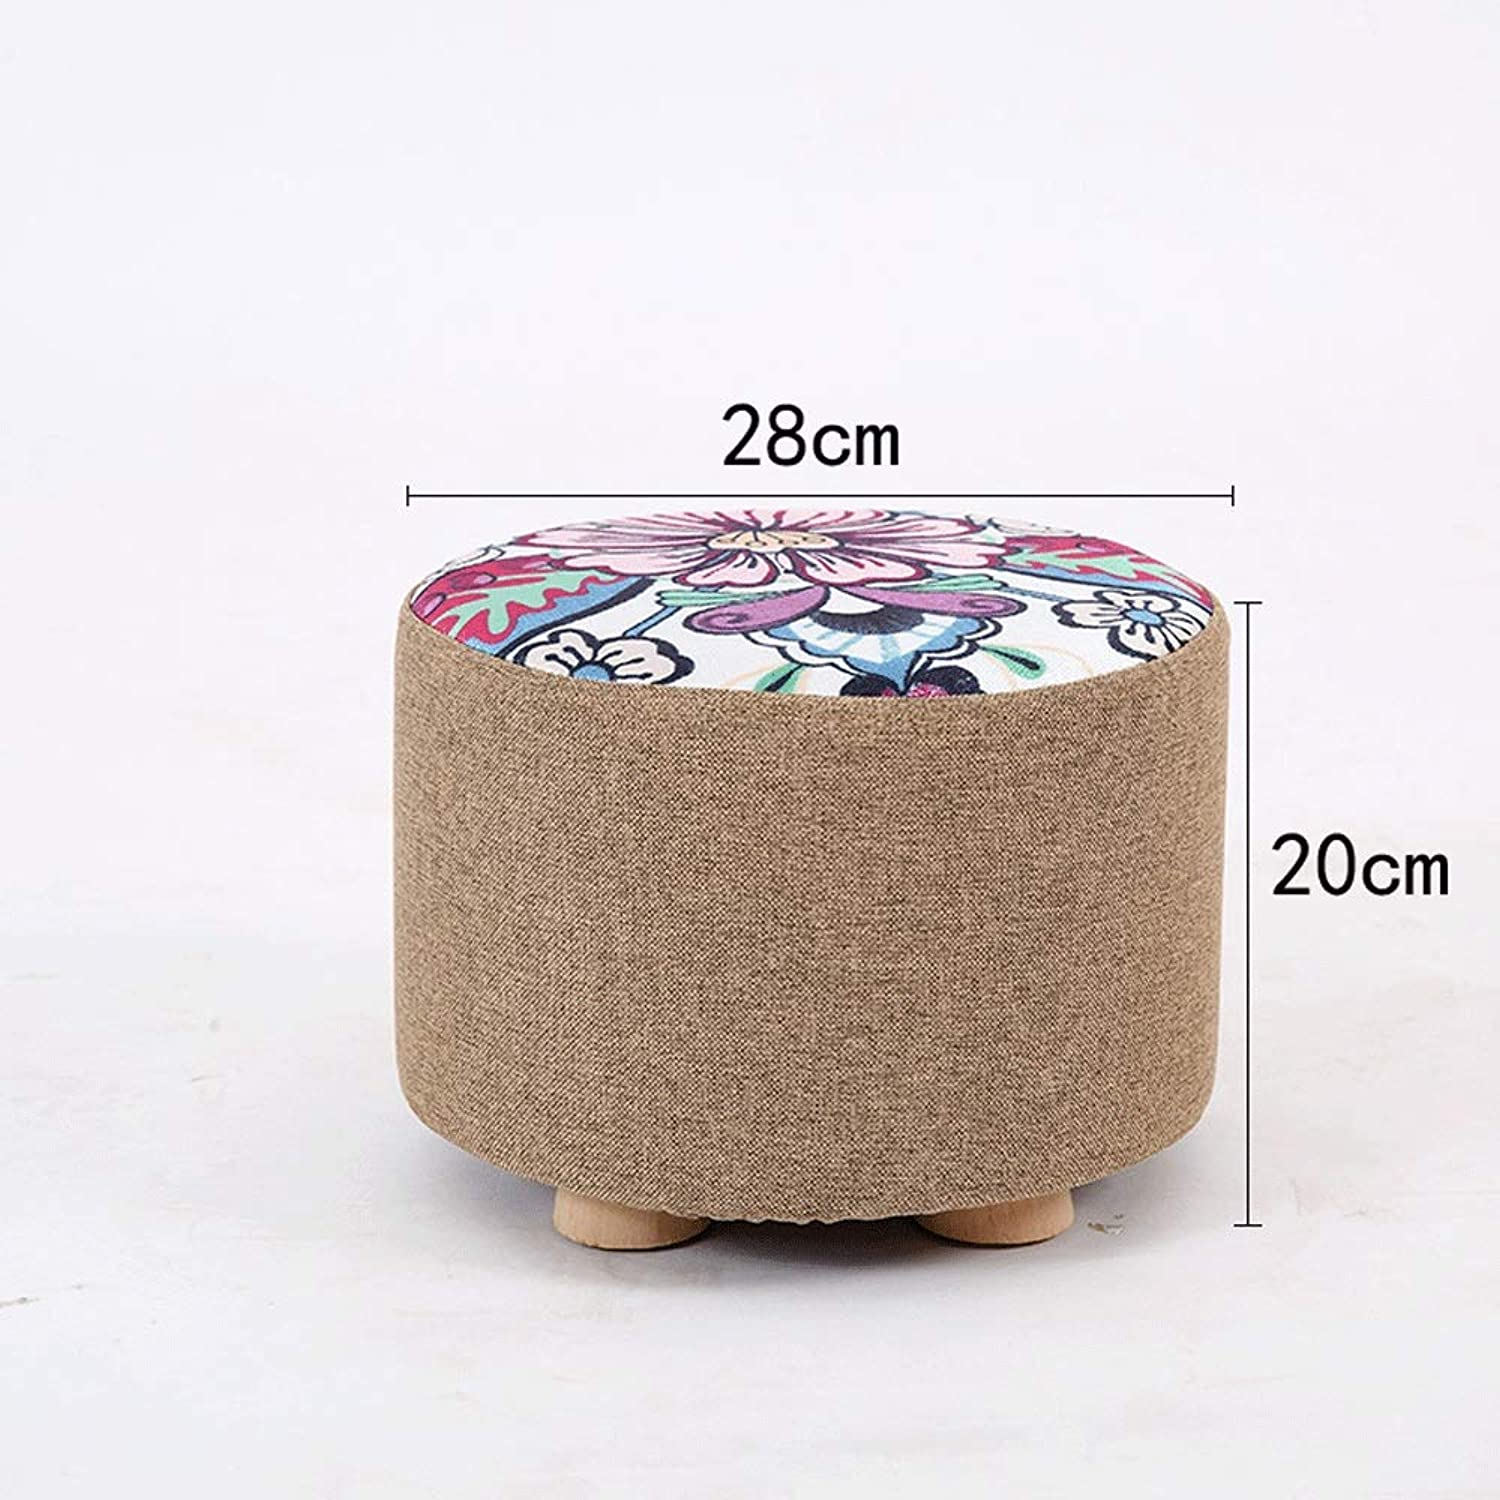 IhDFR Small Bench Solid Wood Home Change shoes Stool Fashion Creative Simple Living Room Bedroom Fabric Stool Washable Small Stool (color   C, Size   Short)